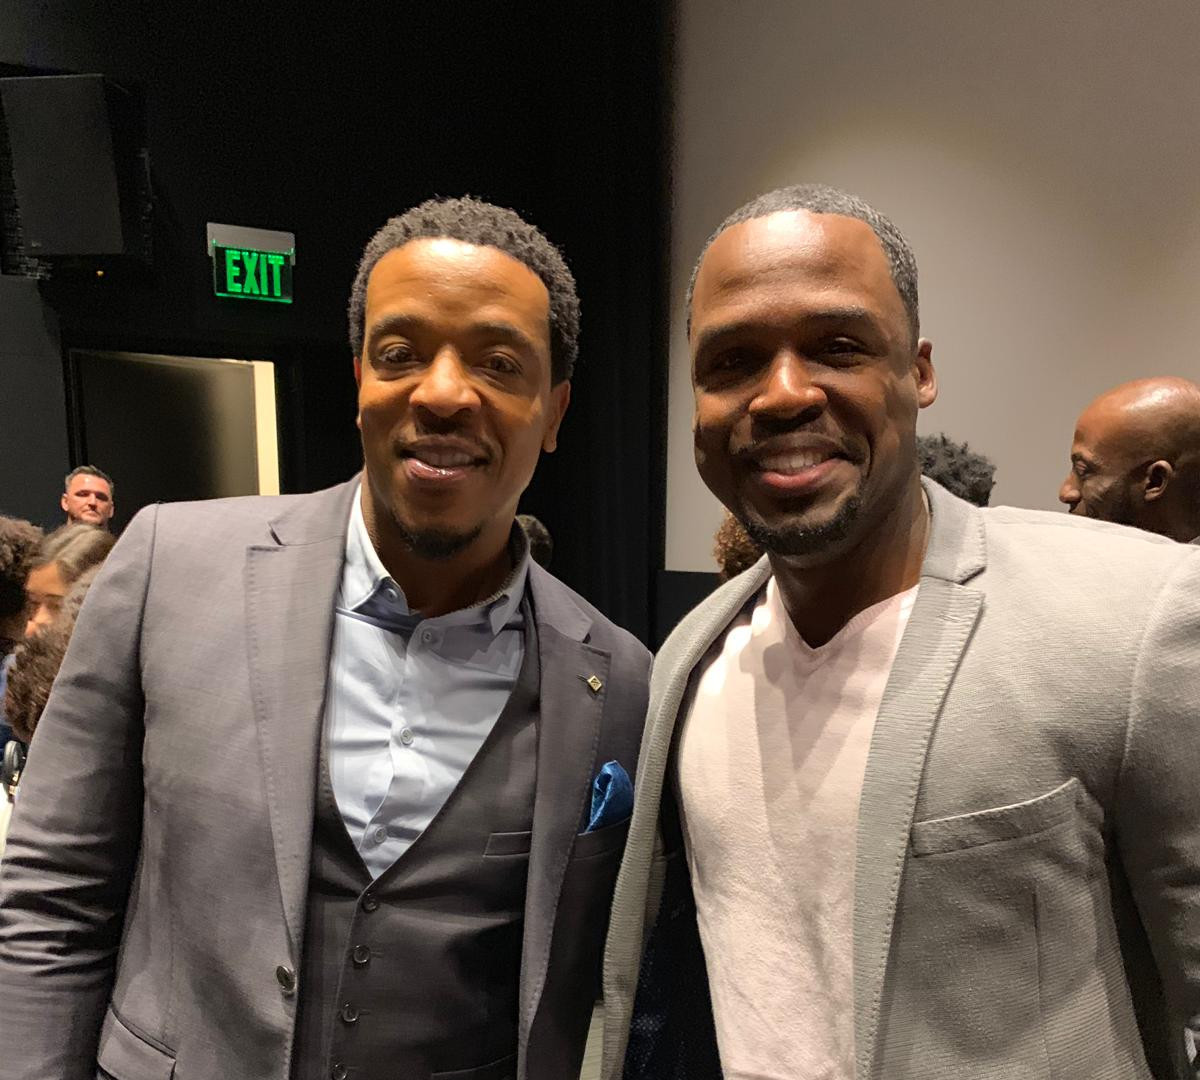 """""""Brother this is FANTASTIC!  Screenwriters, Producers, actors, directors can just connect with me directly for any film project … this is insane!"""" - Russell Hornsby, Award Winning Actor"""